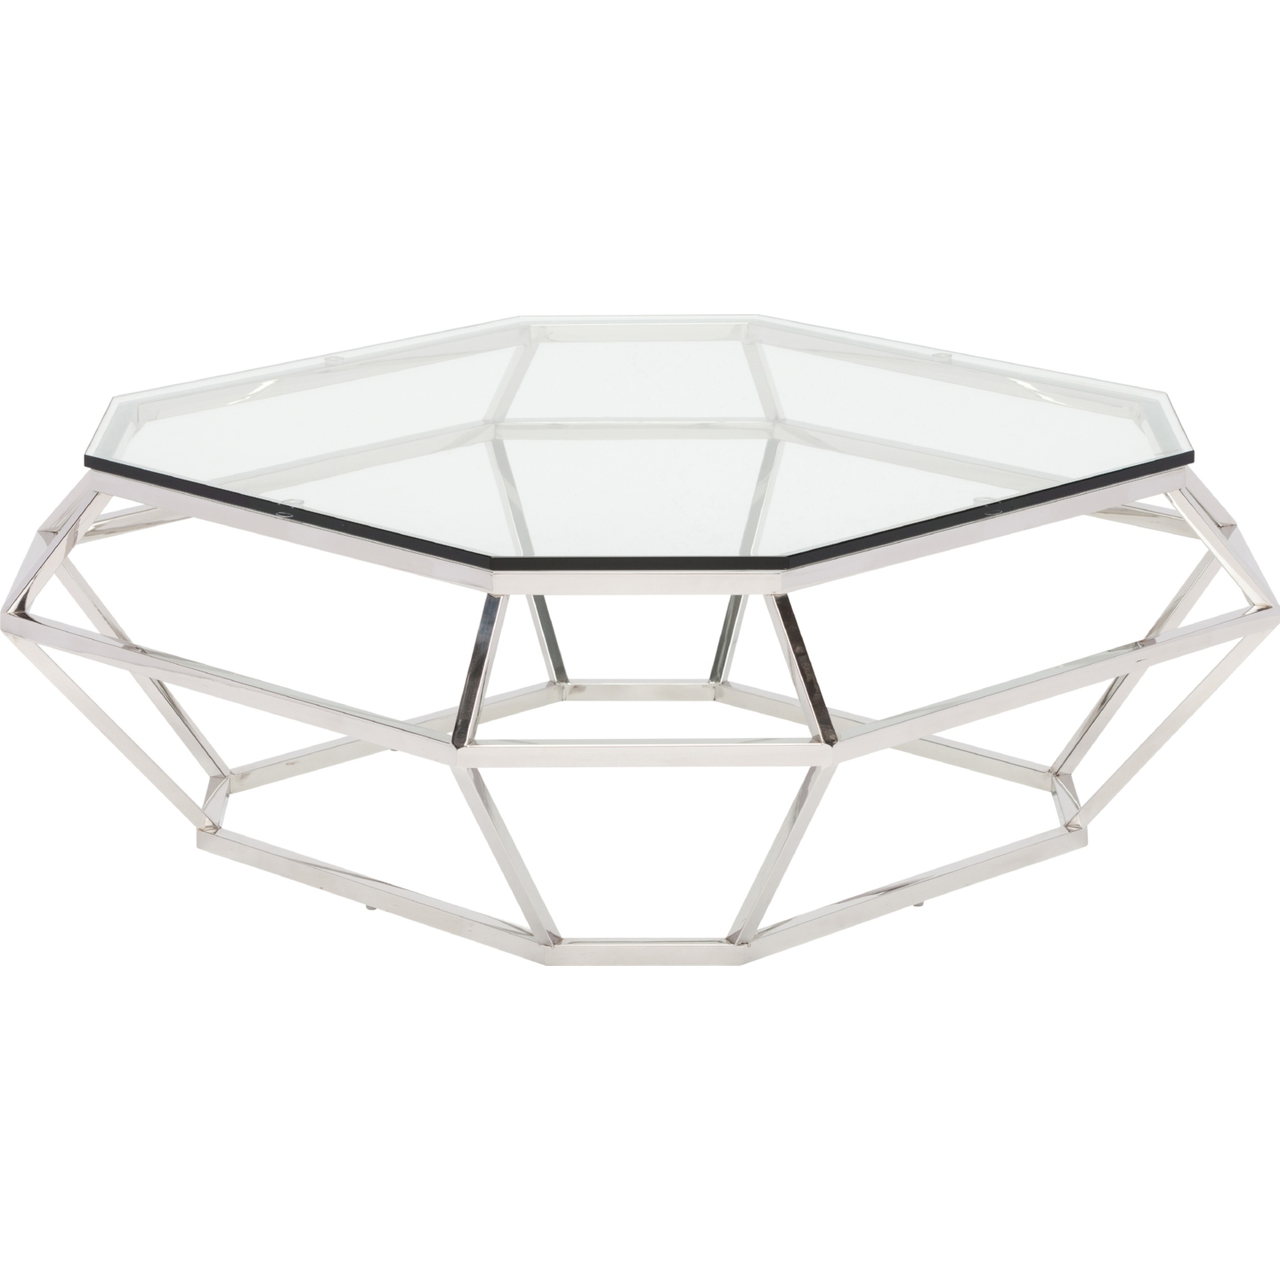 40 Metal Square Coffee Tables: Nuevo Diamond Square Coffee Table Stainless Steel Or Rose